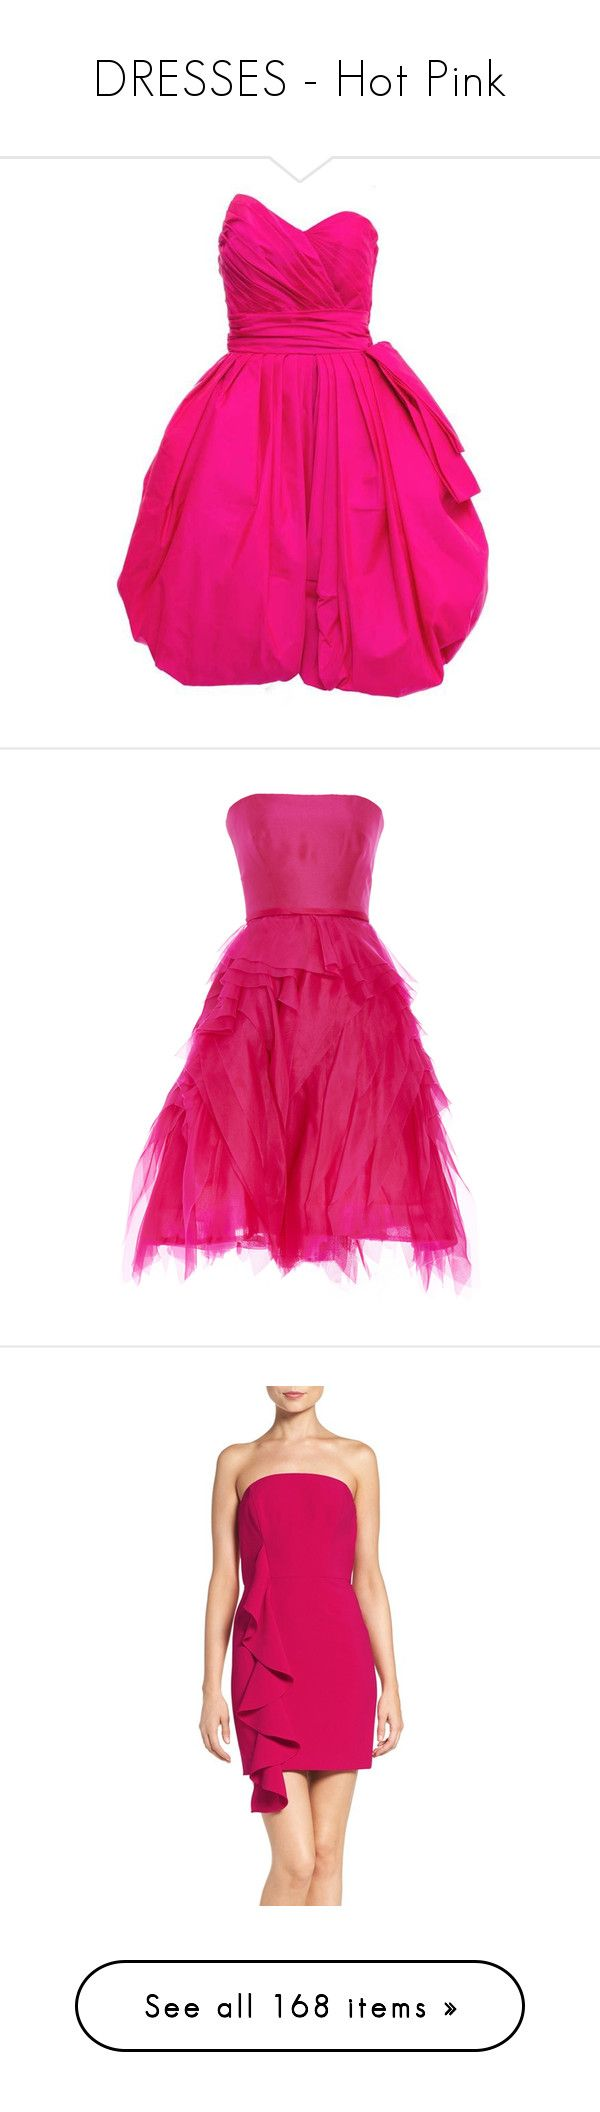 """""""DRESSES - Hot Pink"""" by lynesse ❤ liked on Polyvore featuring dresses, cocktail dresses, pink, victor costa dress, pink strapless dress, neon pink dress, 80s dress, strapless cocktail dresses, strapless dress and tiered strapless dress"""